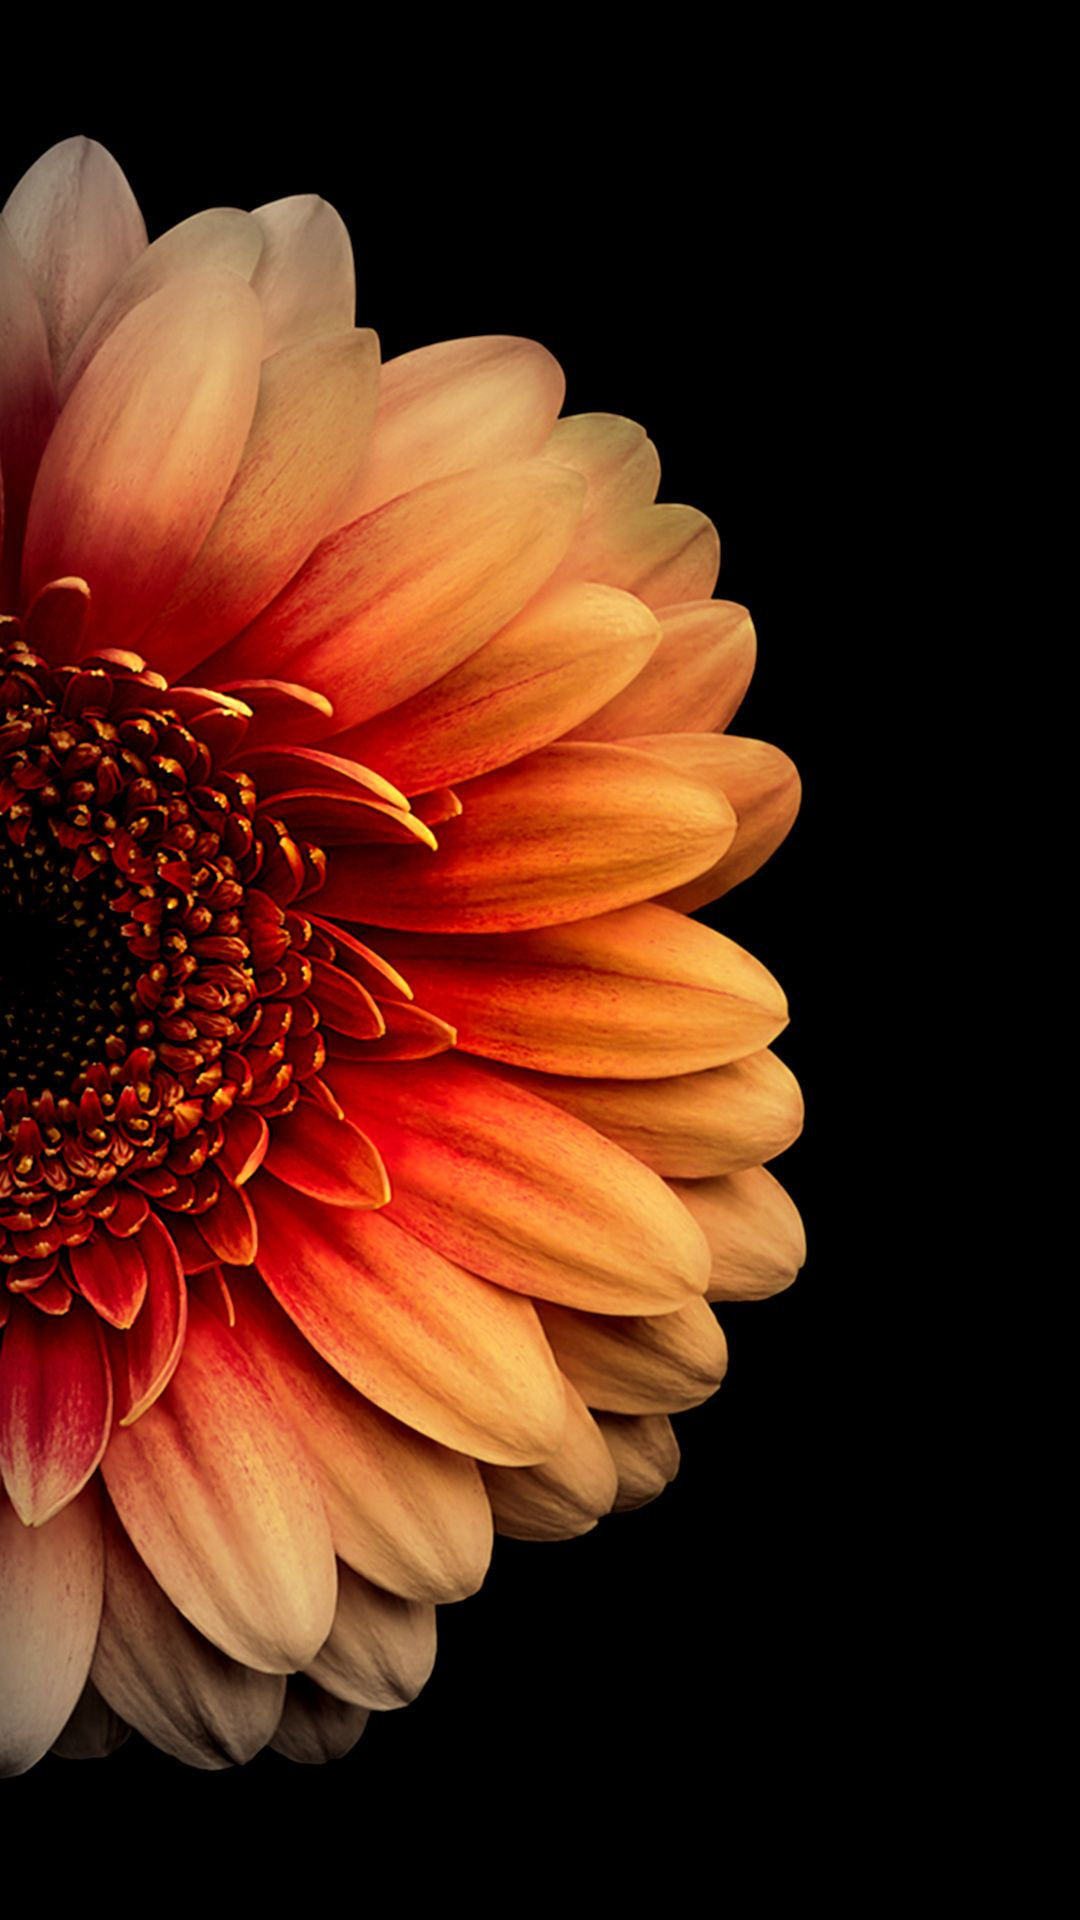 Pin by Vactual Papers on Mobile Wallpapers Flower iphone